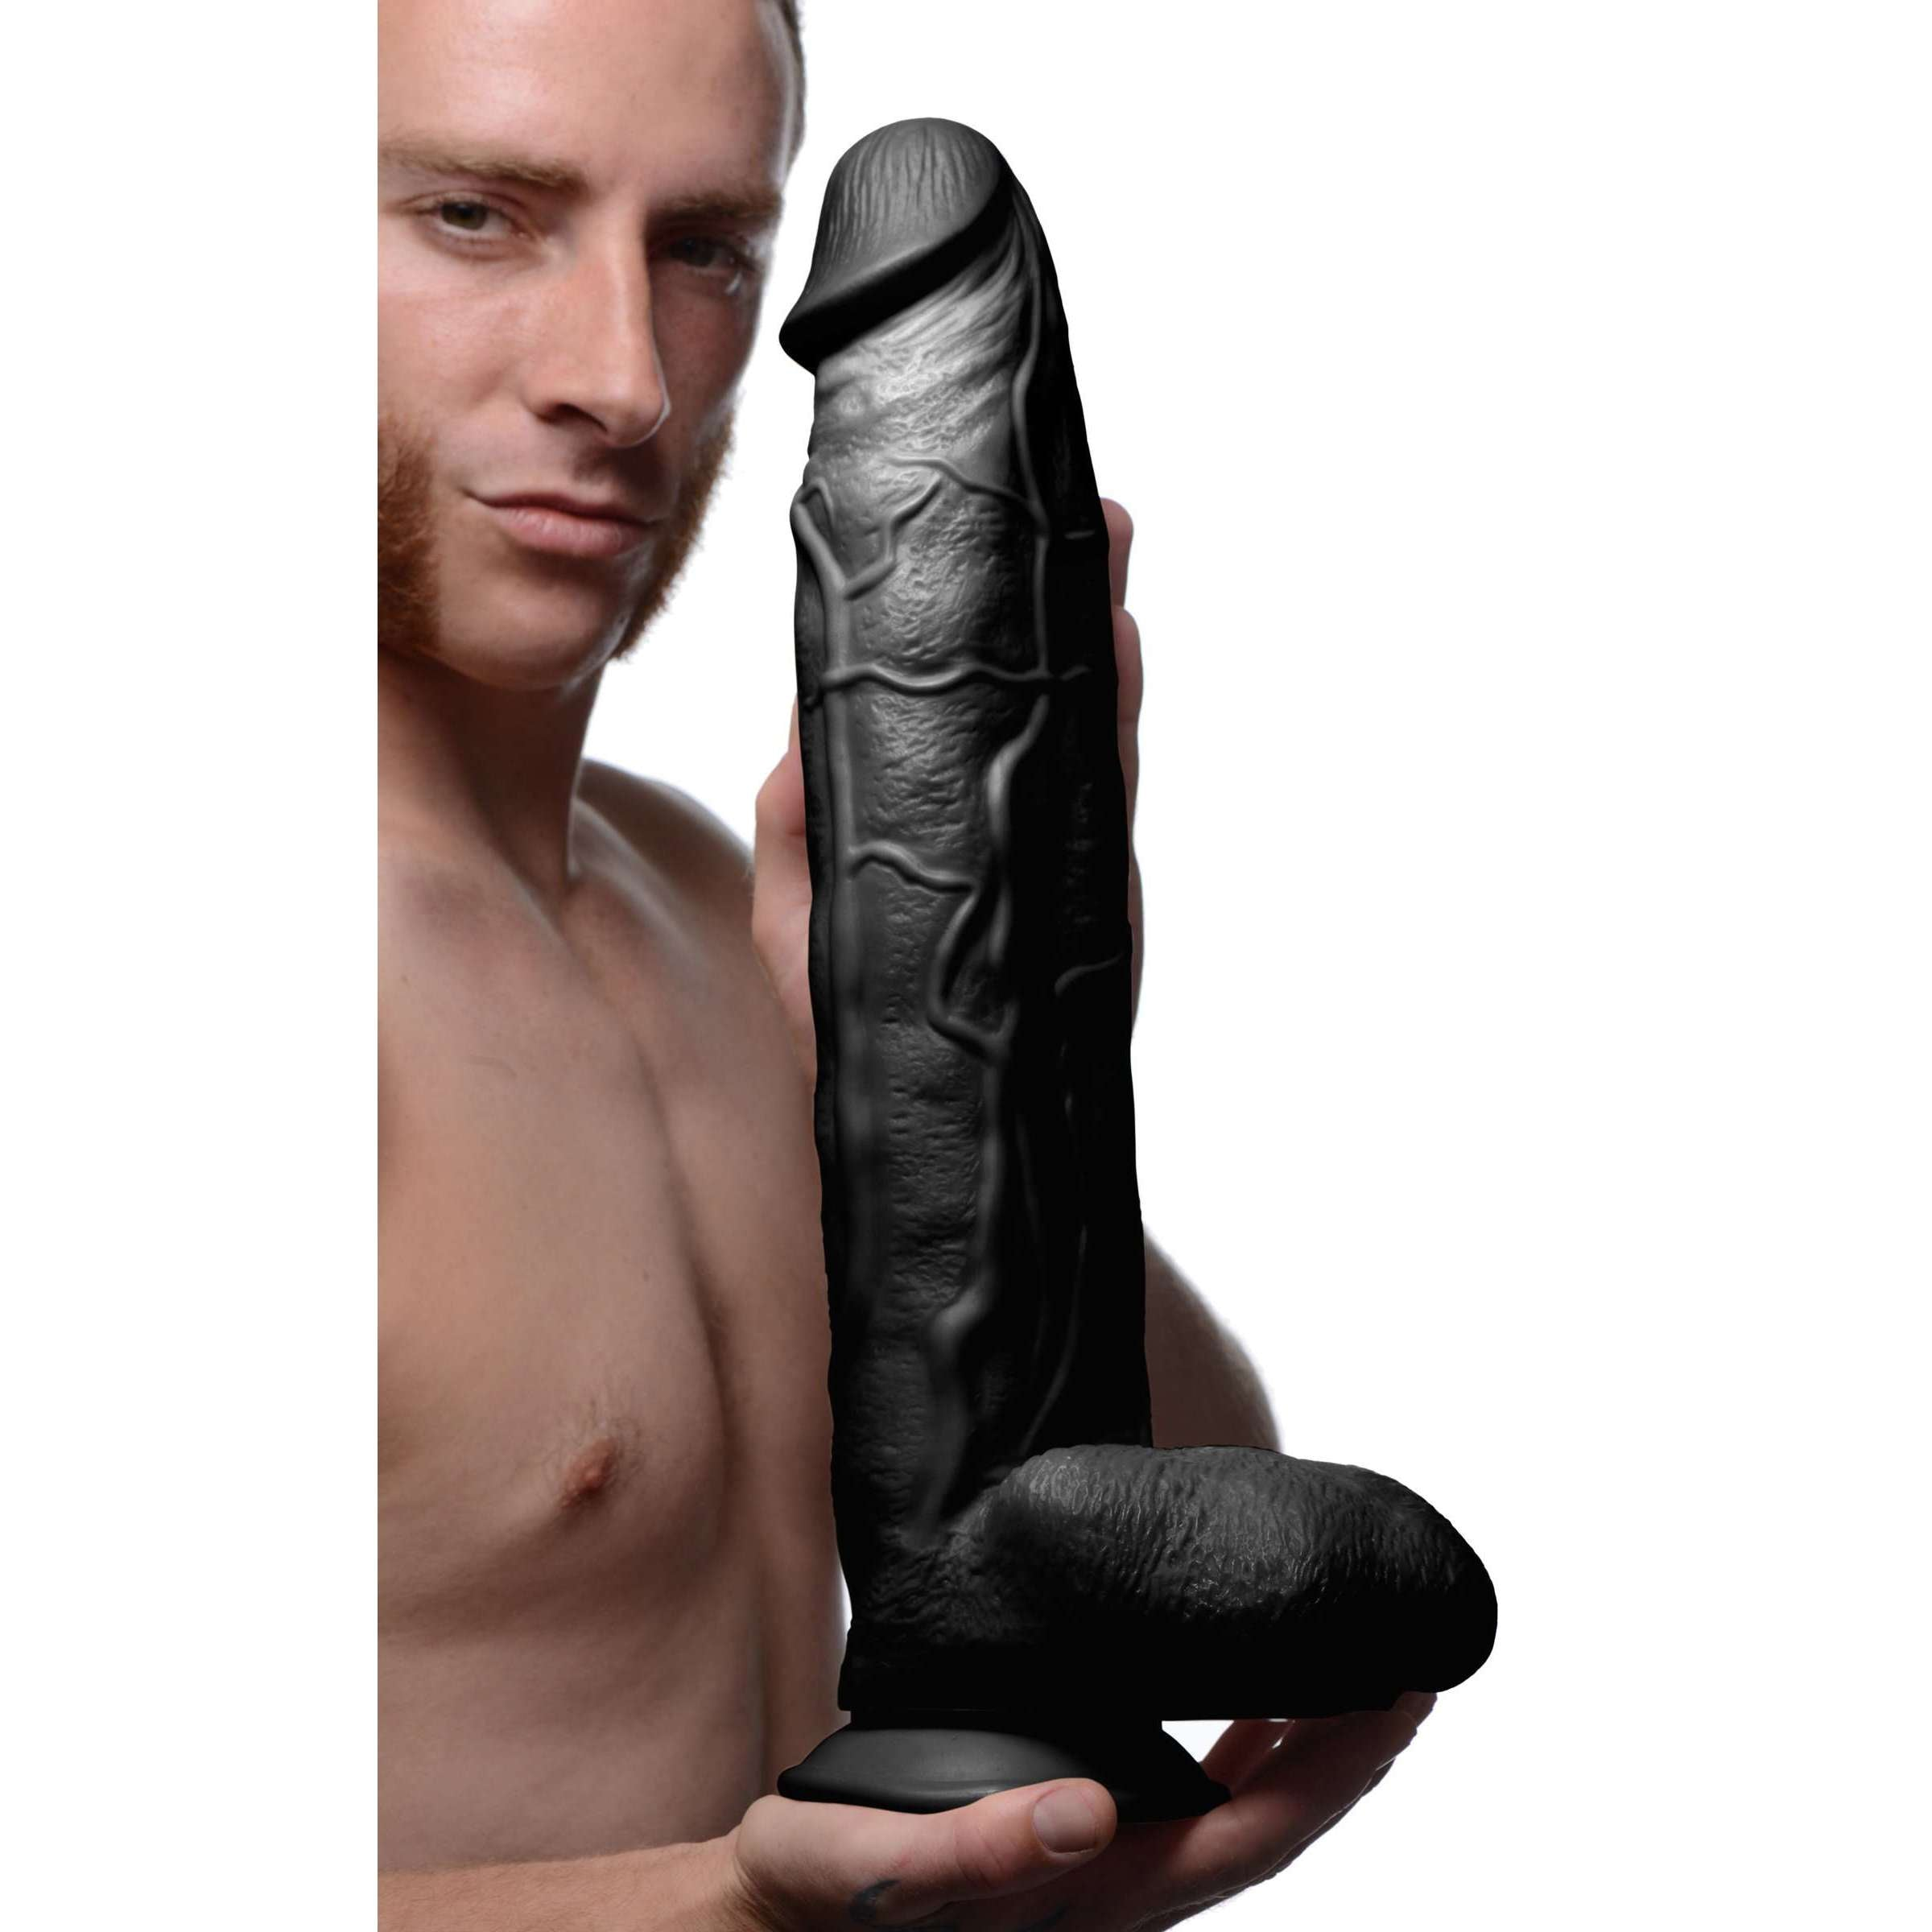 Raging Rhino 17 Inch Veiny Dildo - Black